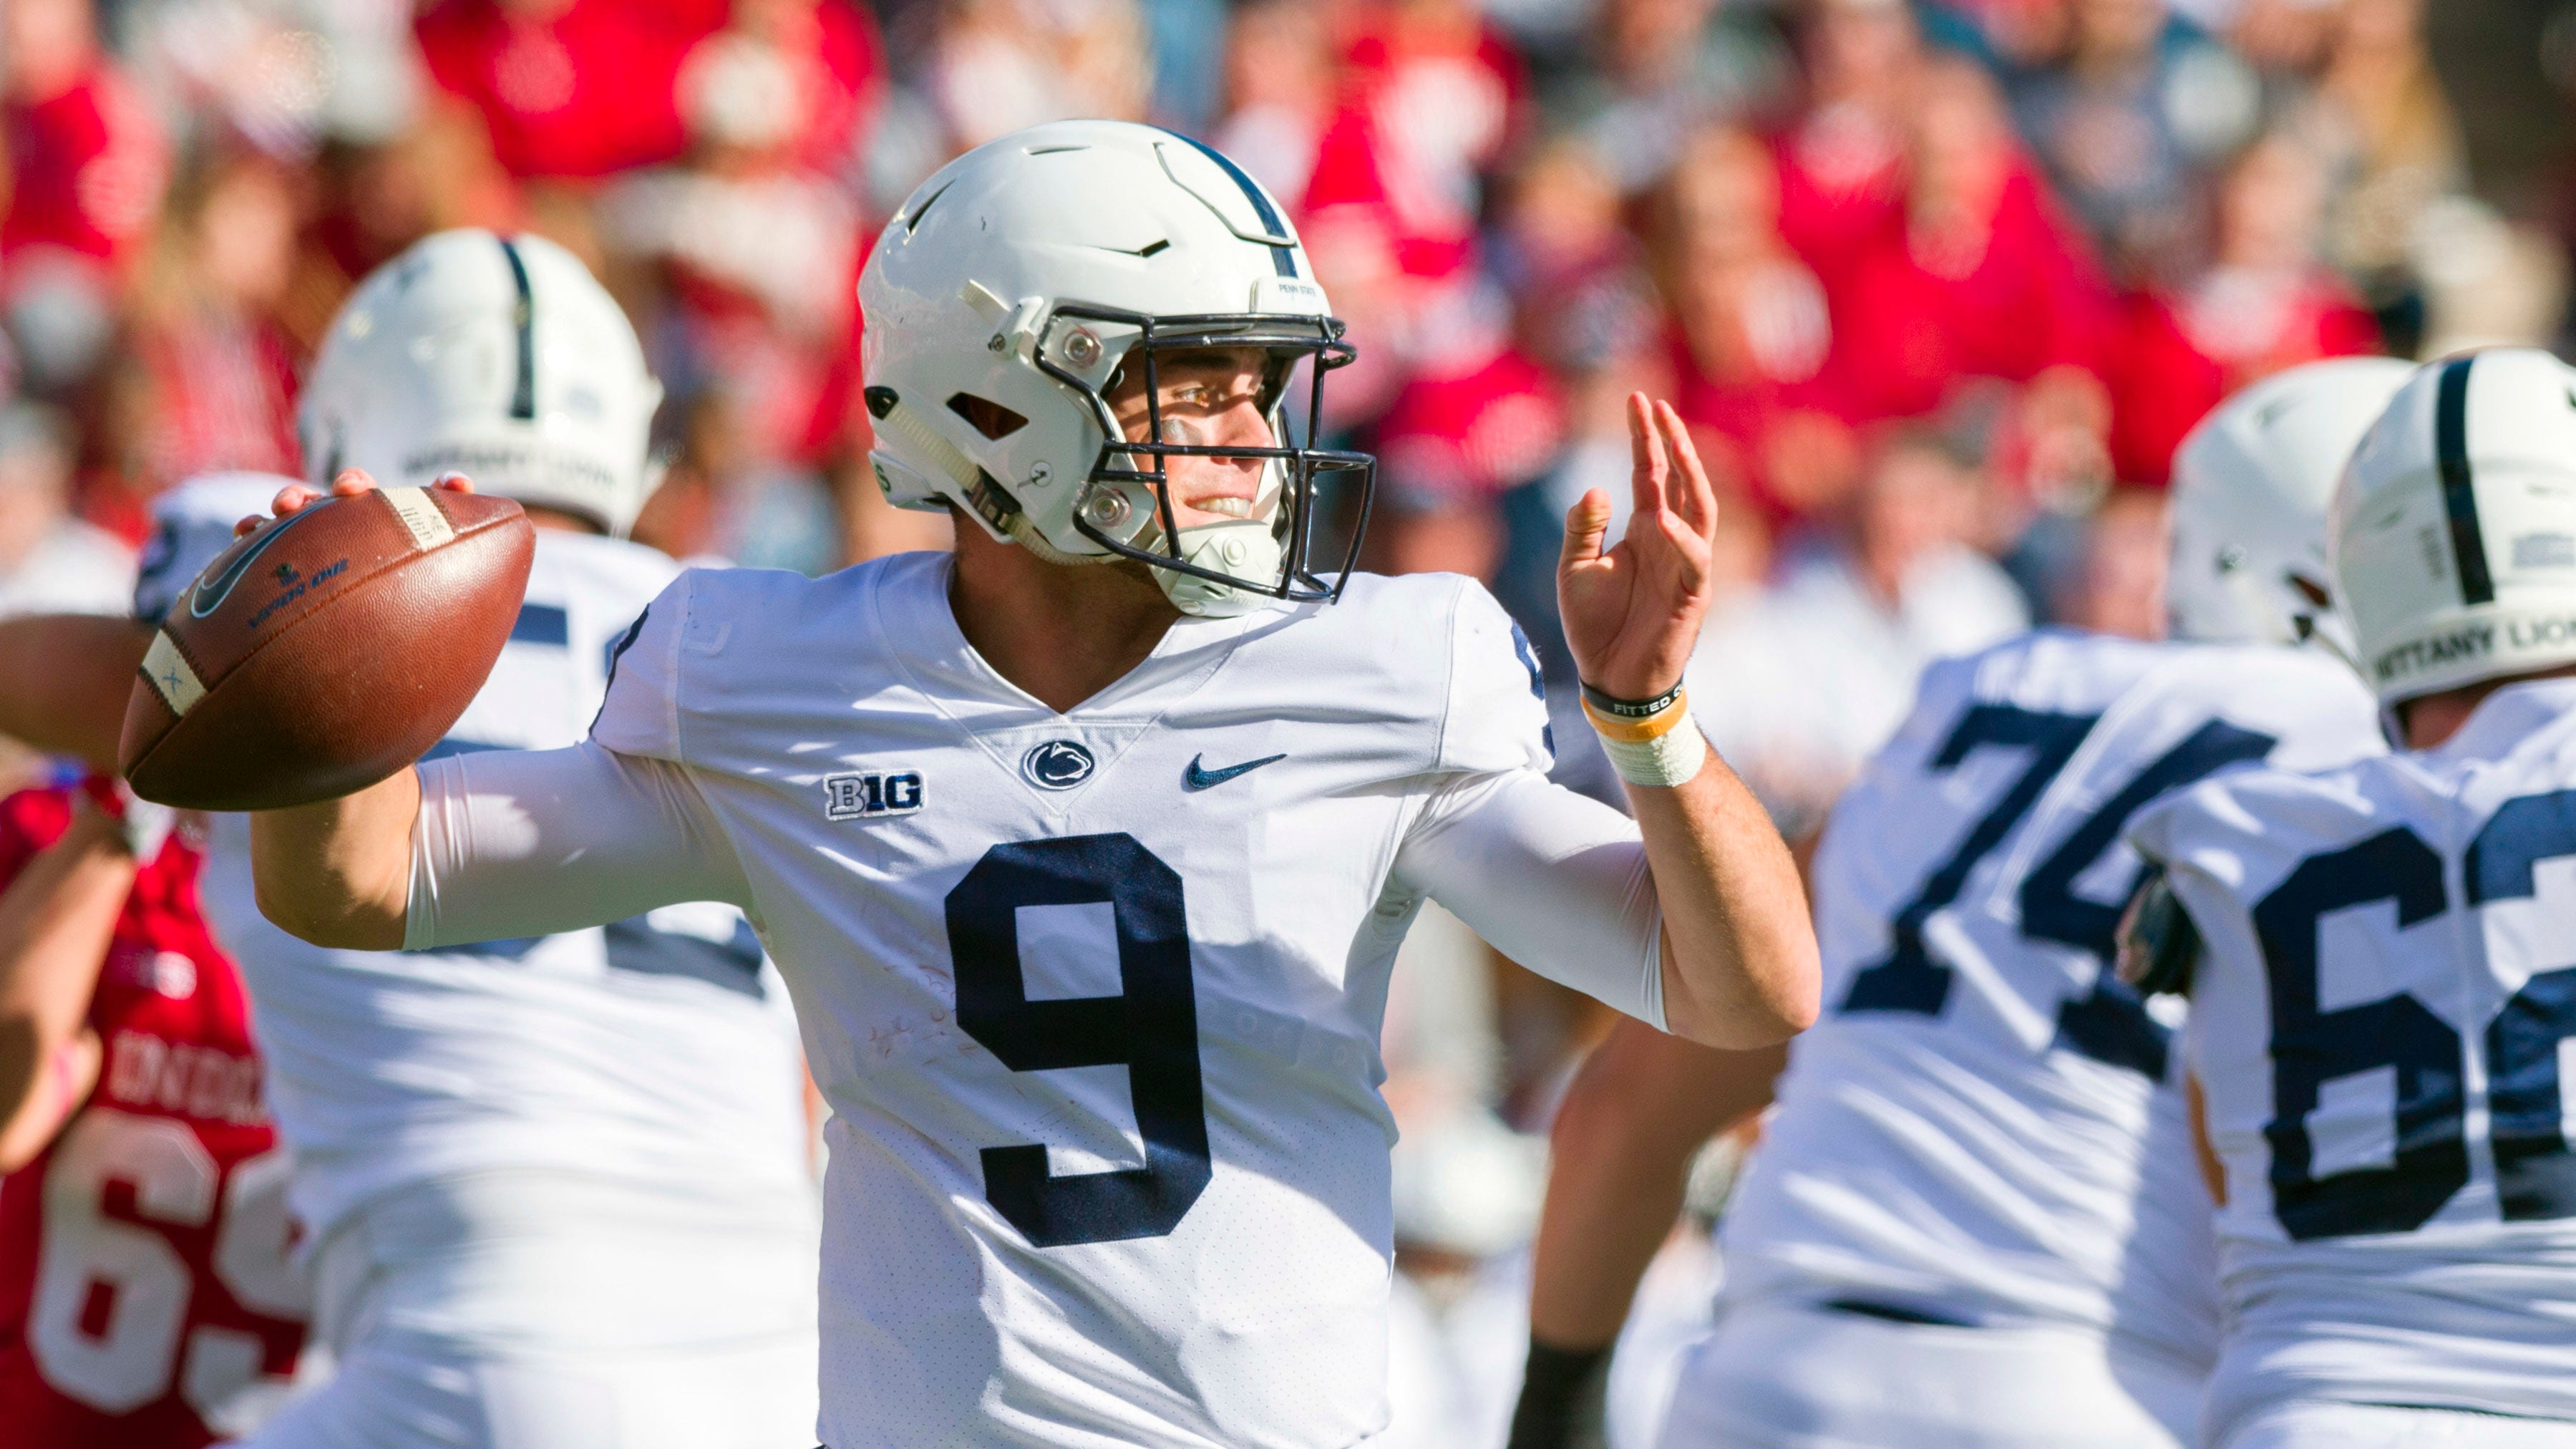 Penn State quarterback Trace McSorley (9) draws back to pass out of the backfield during the first half of an NCAA college football game against Indiana Saturday, Oct. 20, 2018, in Bloomington, Ind.